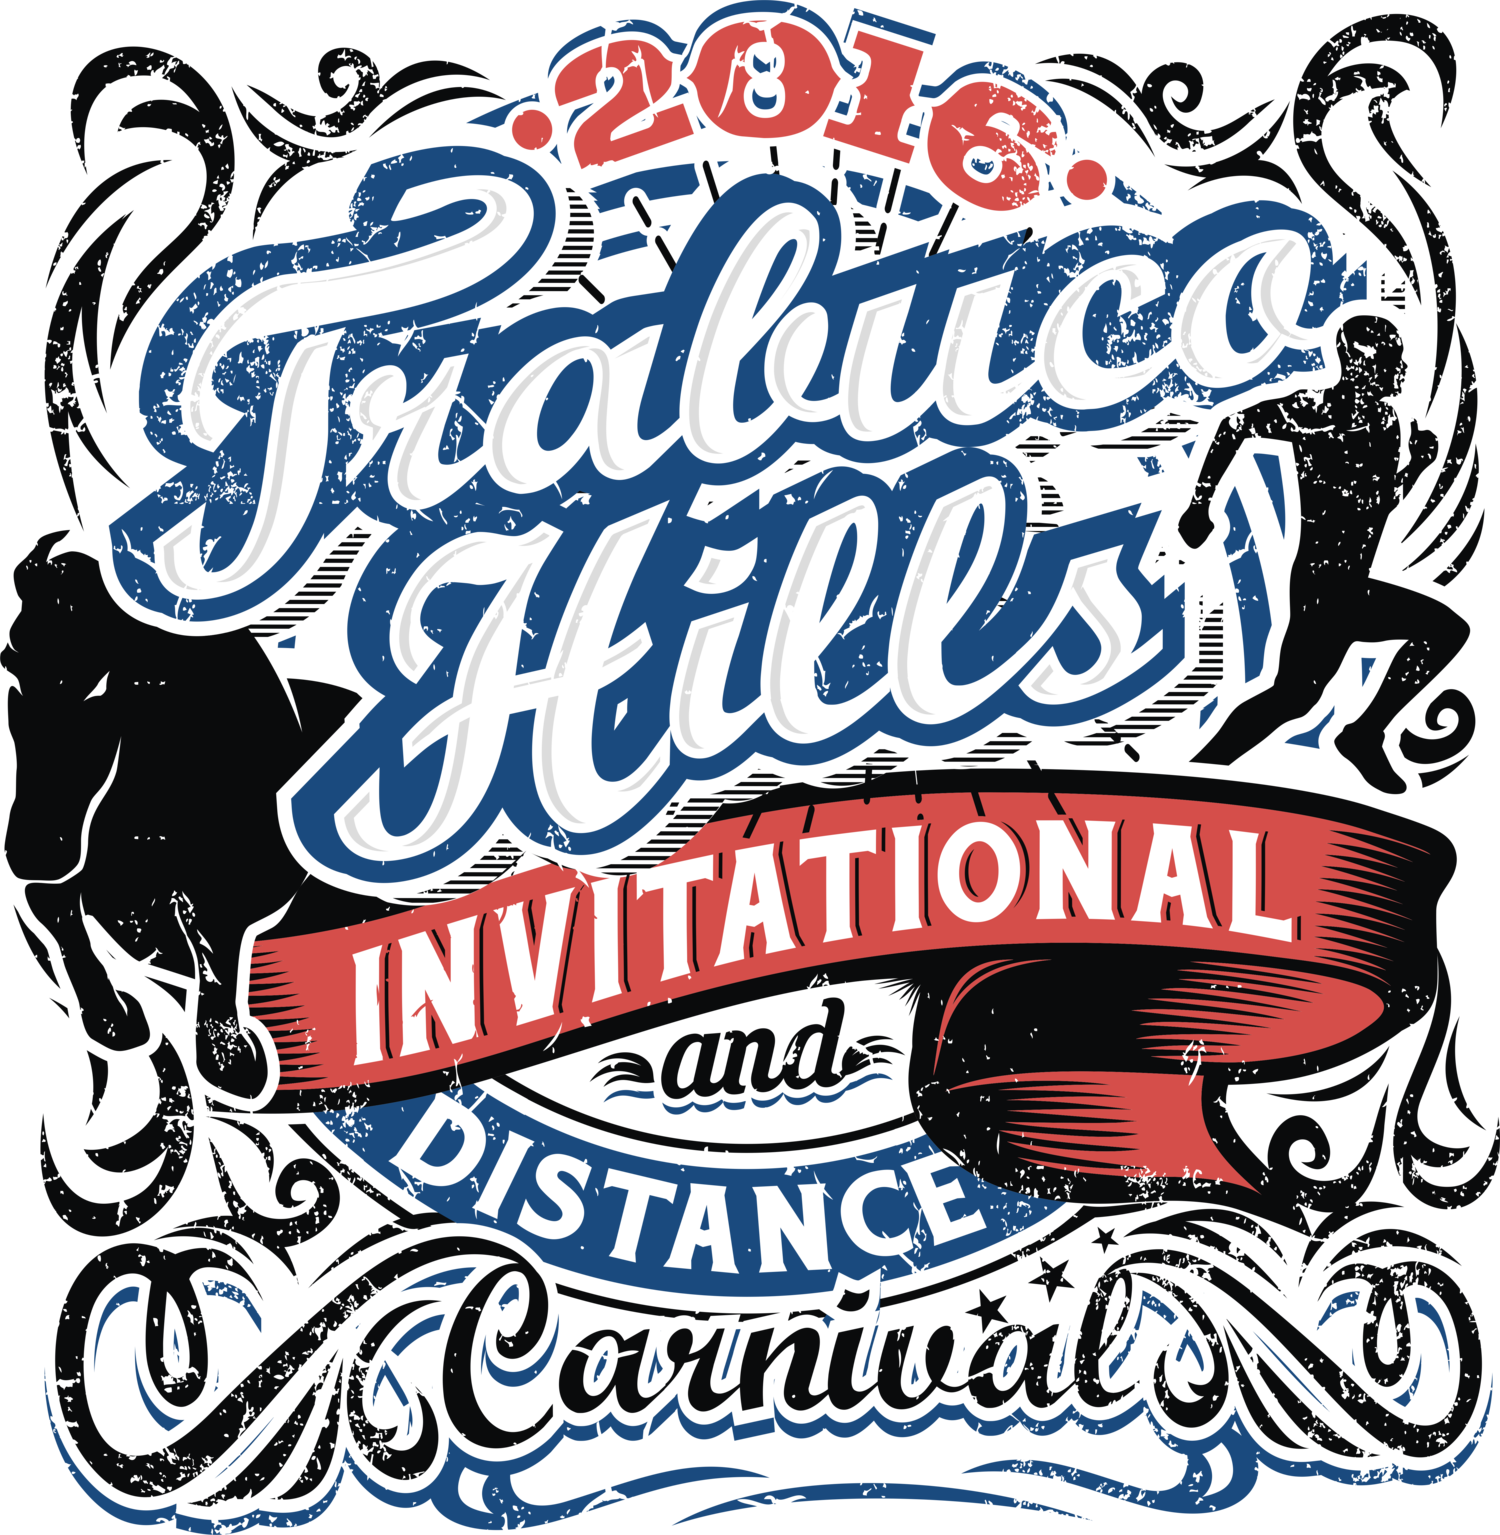 26th Trabuco Hills Invitational and Distance Carnival